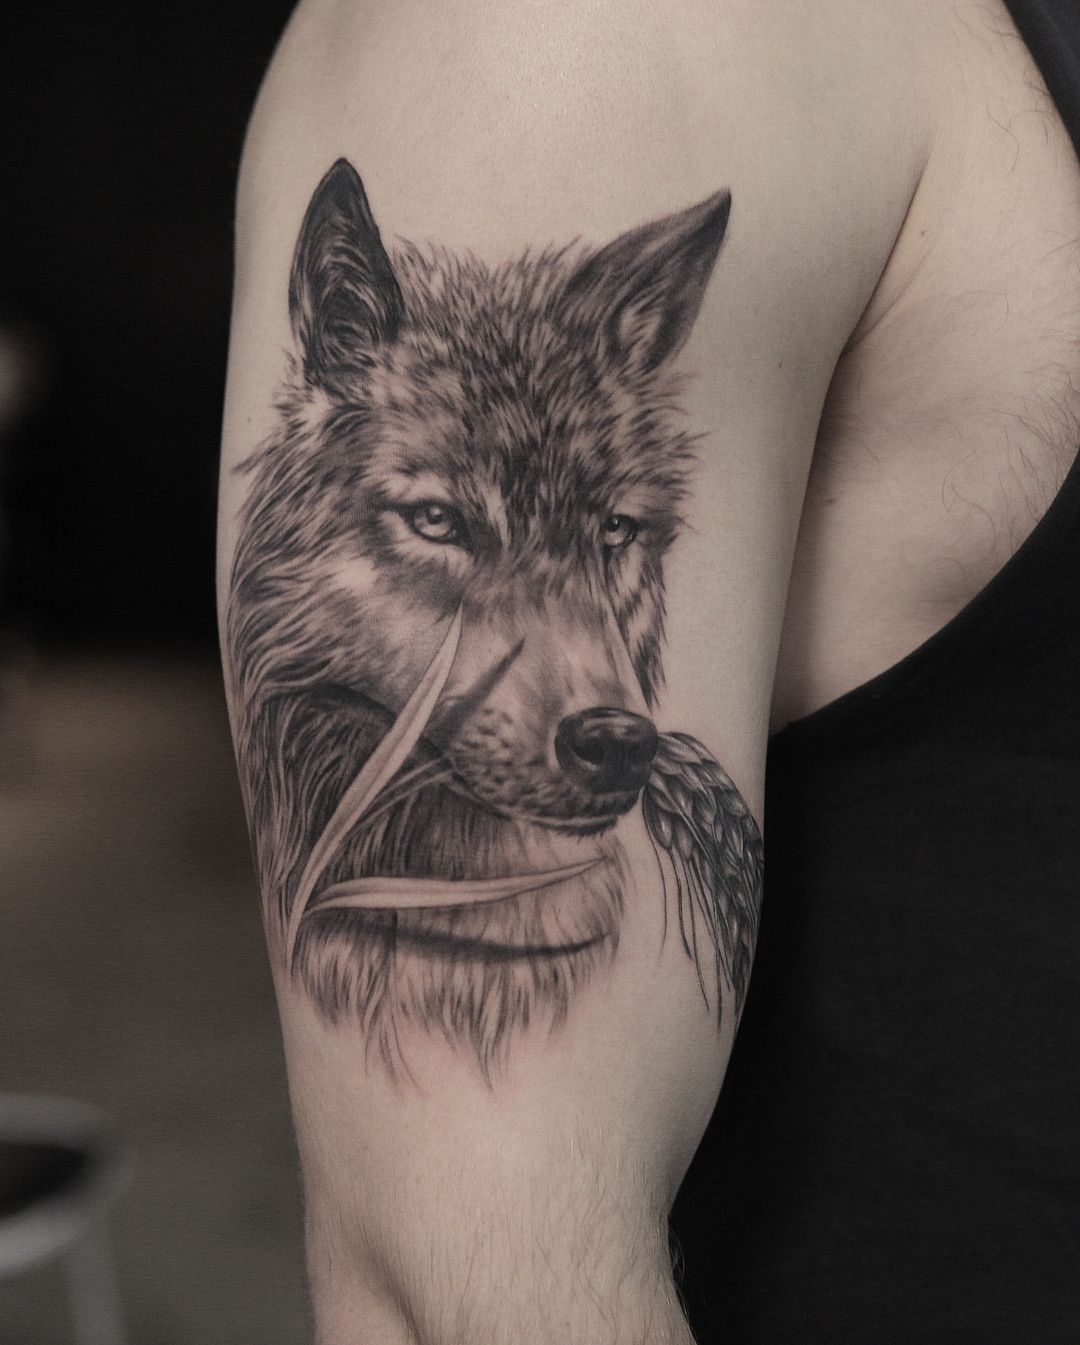 Cool Tattoo Ideas For Men And Women The Wild Tattoo Design Pictures 2019 Wolf Tattoos Wolf Sleeve Tattoos